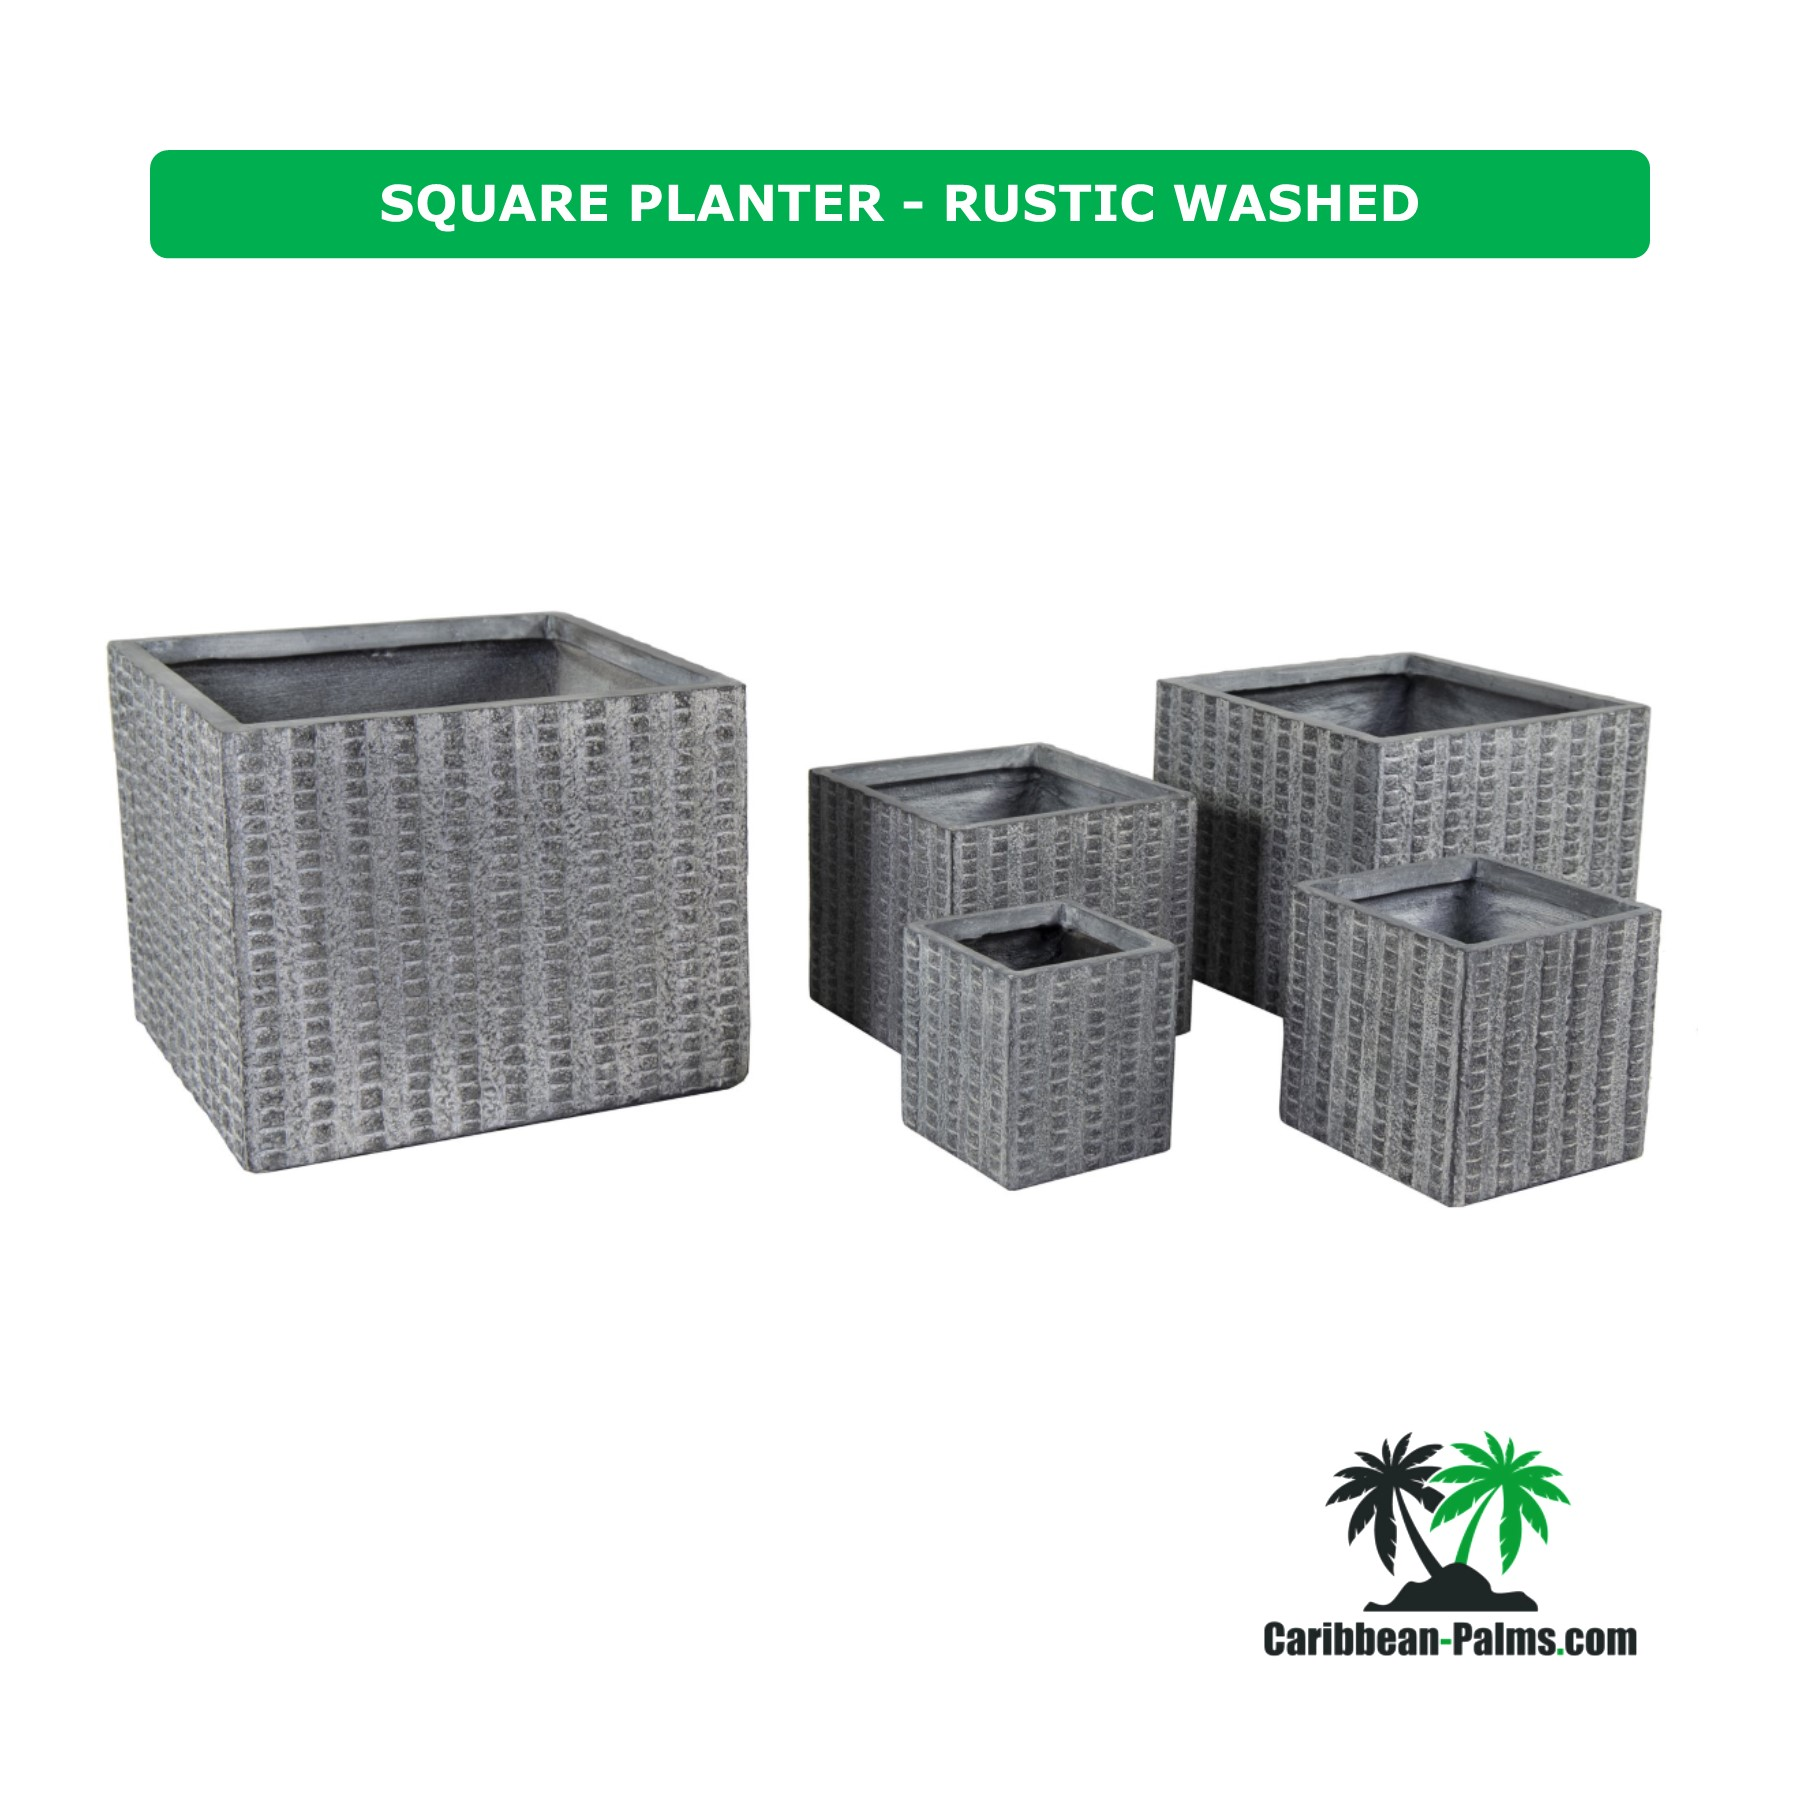 SQUARE PLANTER RUSTIC WASHED